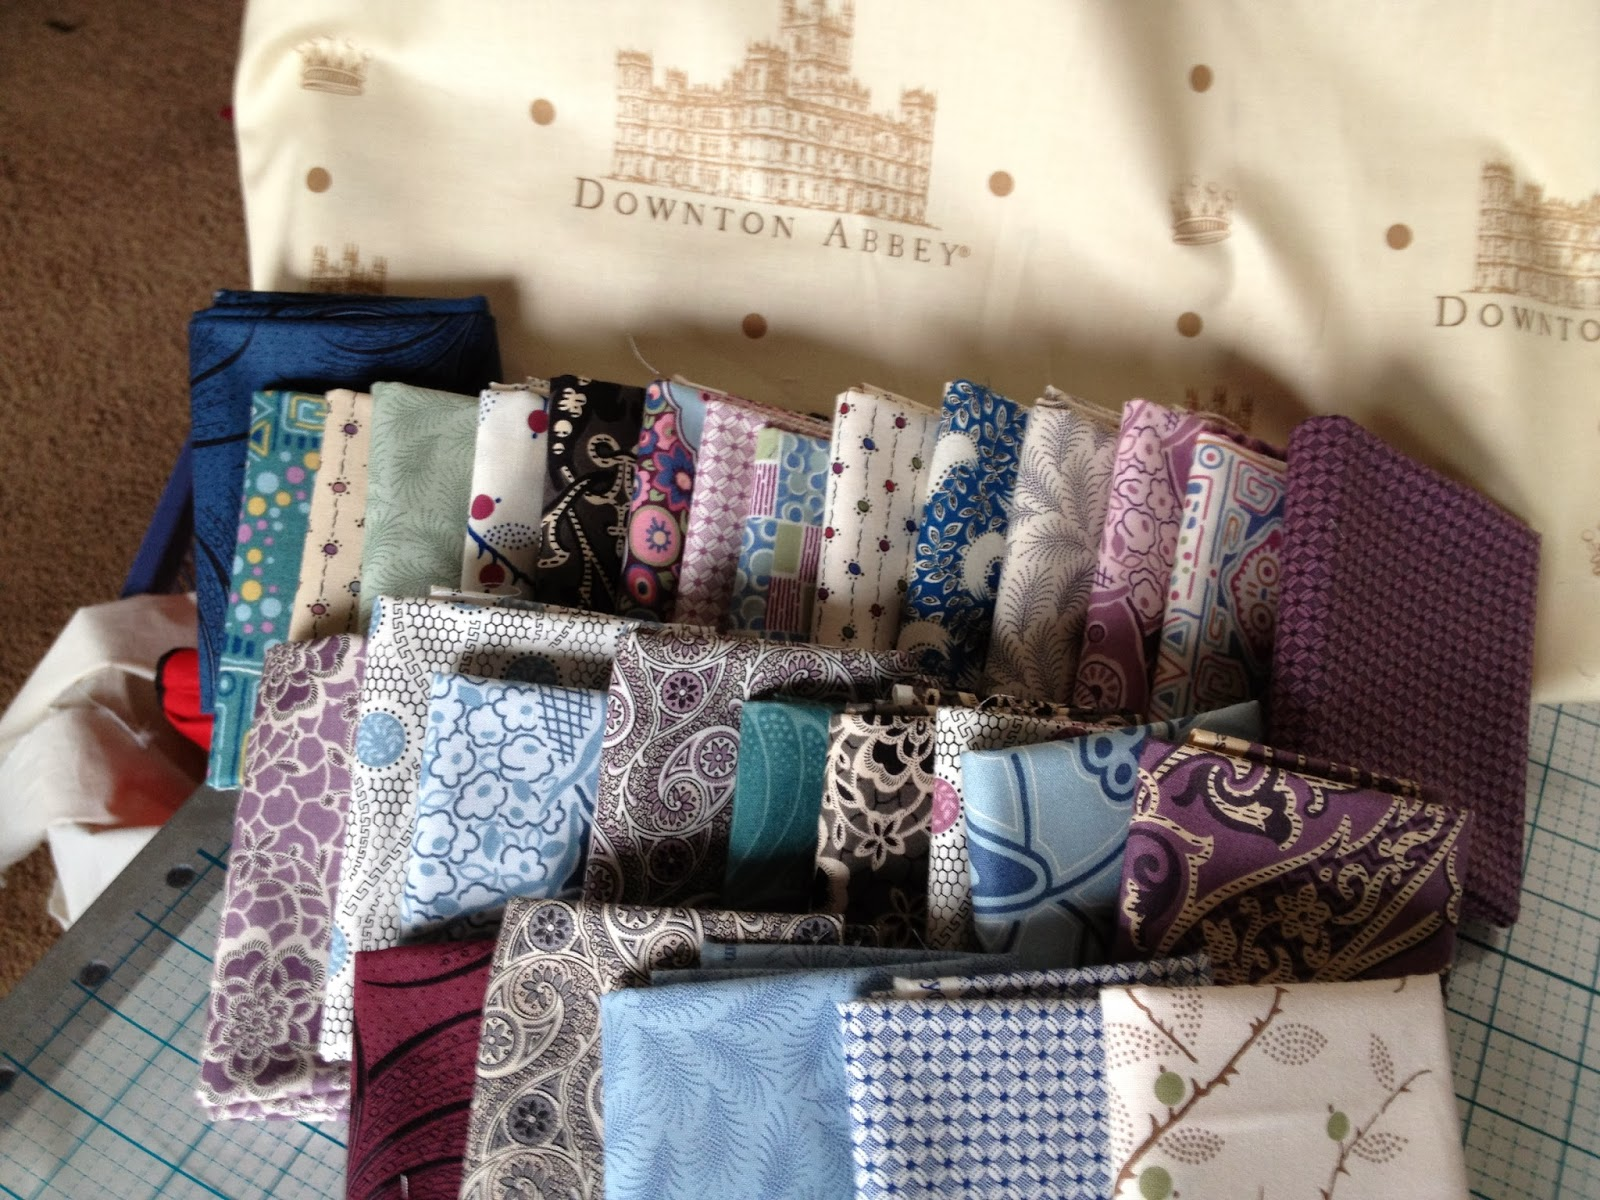 Annies Ruby Slipperz Making A Quilt With The Ladies Of Downton Abbey